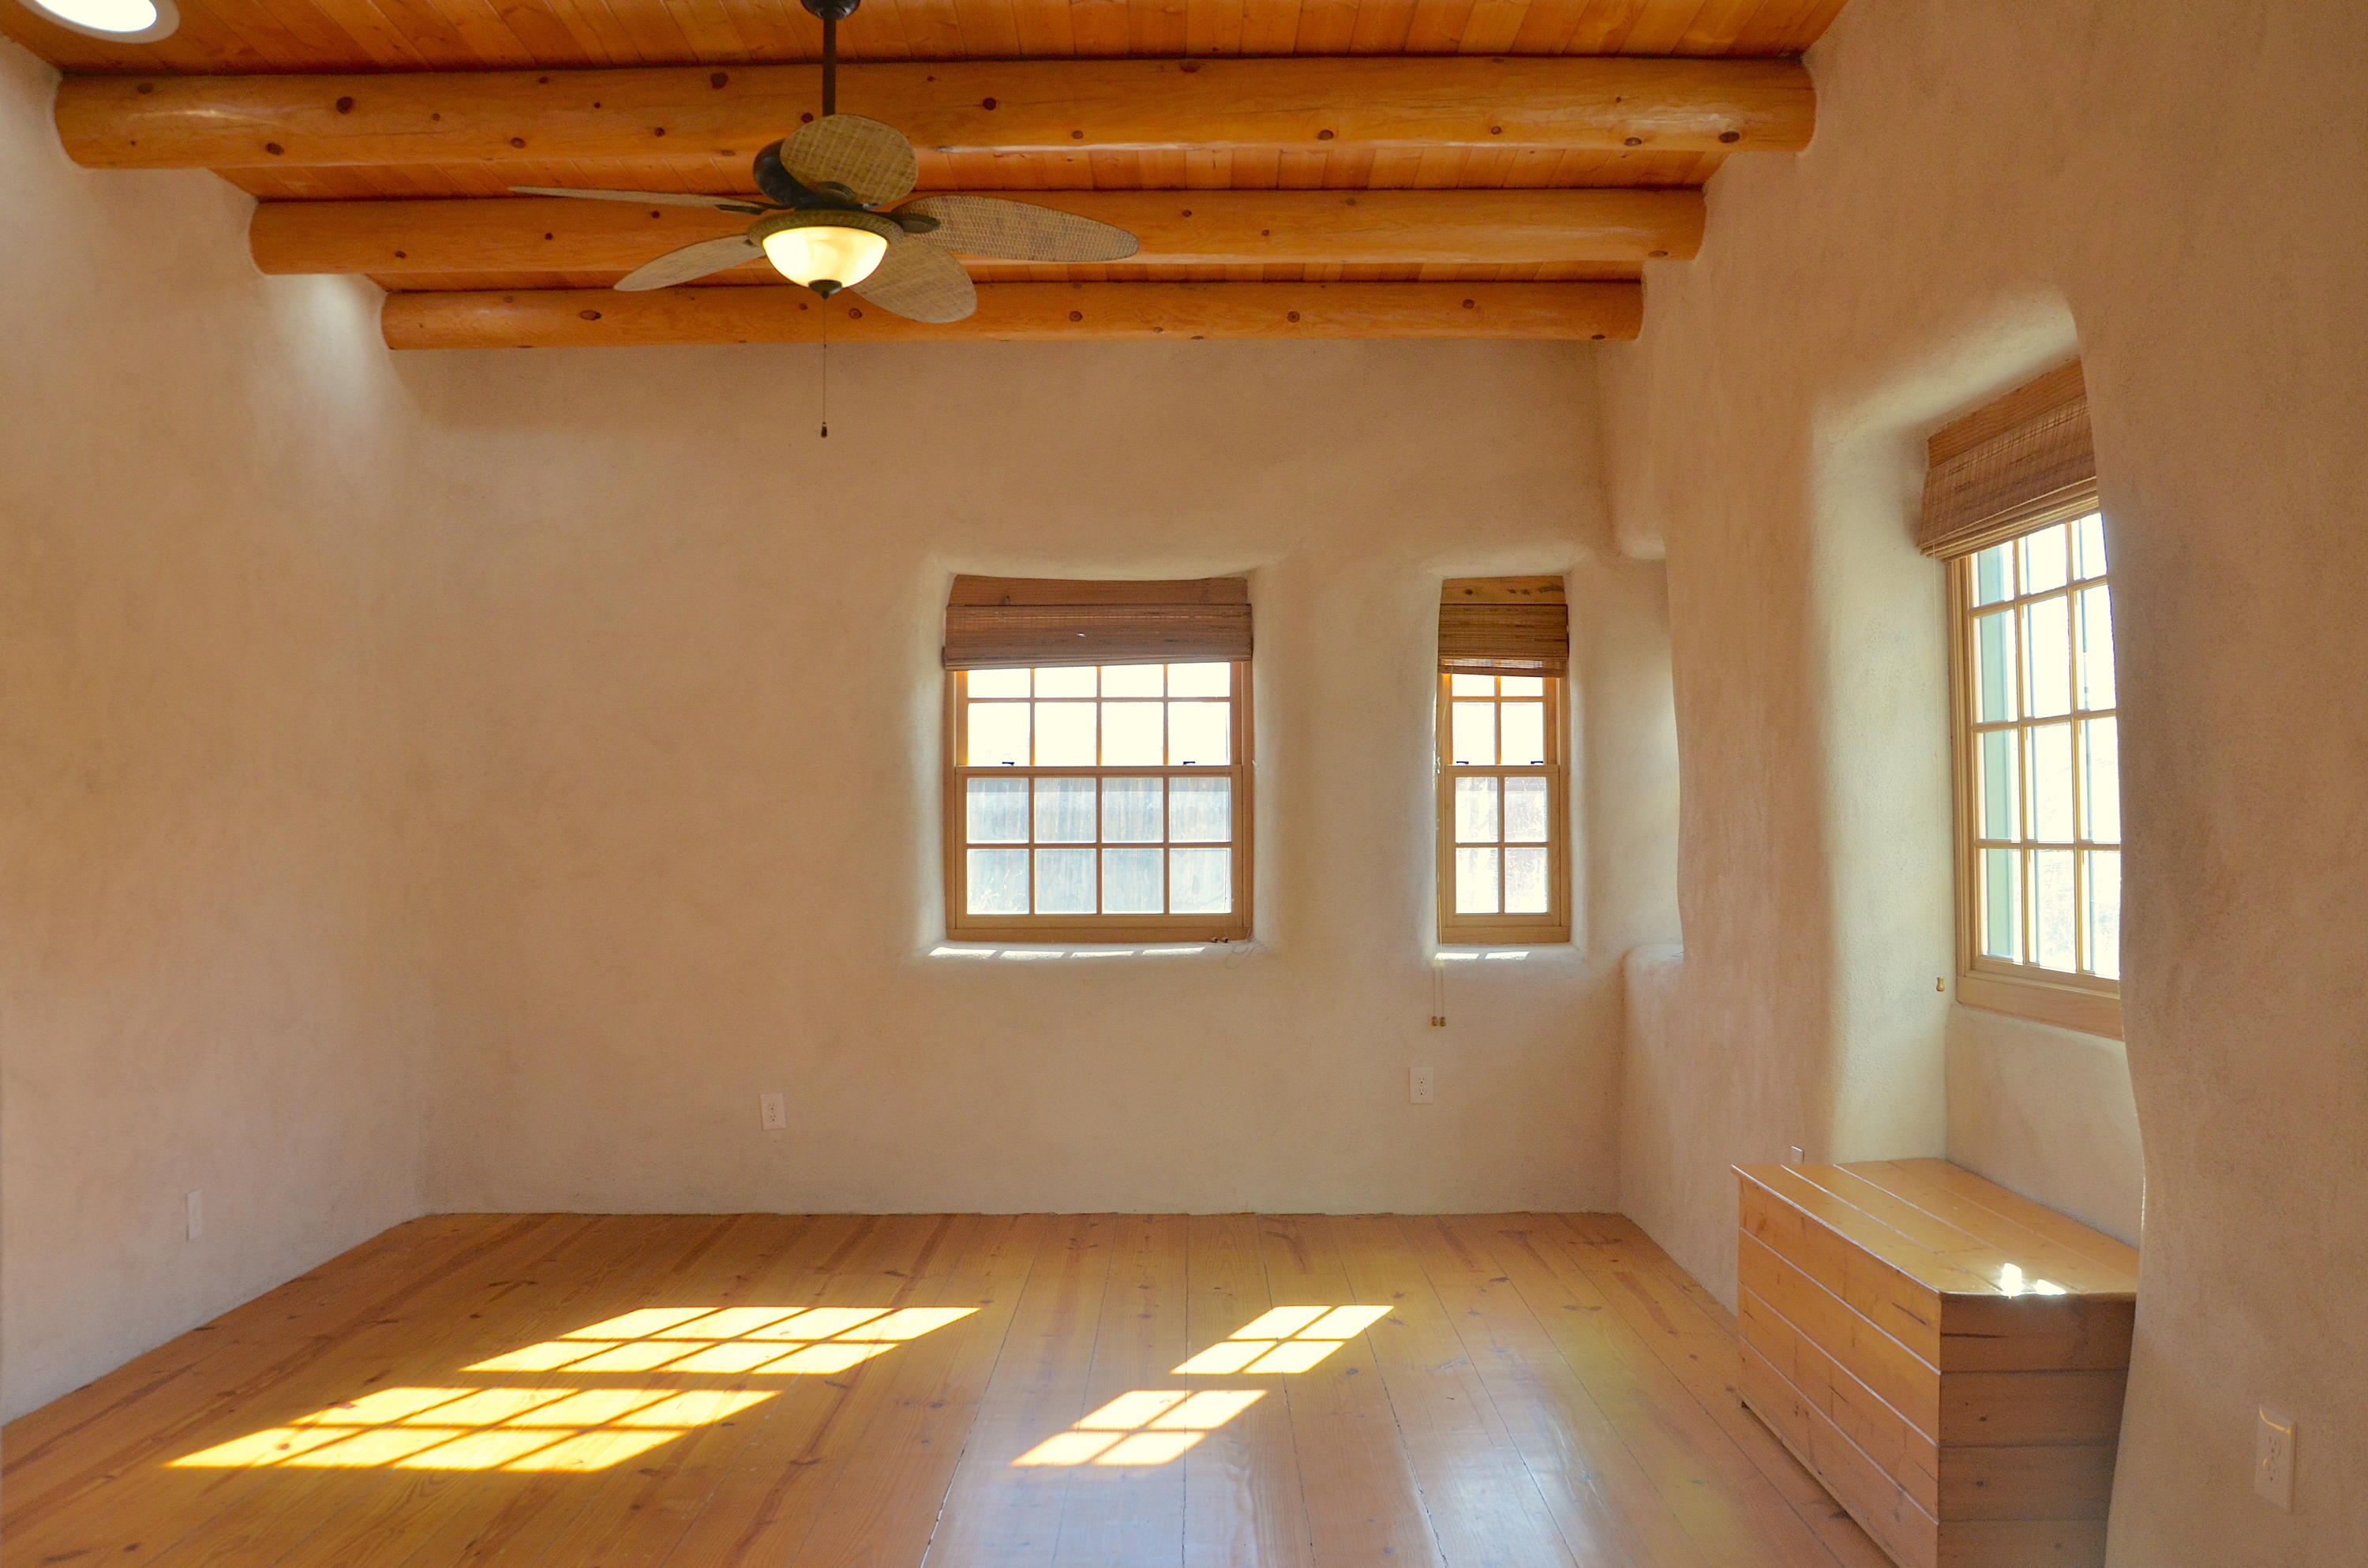 2 ADOBE HOMES in THE SAWMILL DISTRICT!  A great opportunity to purchase 2 homes in 1 large corner lot. Lots of possibilities! NORTH HOUSE: Built by adobe builder Alberto Parra c.1950's and enhanced with a straw bale addition by Cadmon Whitty in 2015. This one bedroom, 1 bath, 996 sf. charmer features vigas and latillas, high ceilings, skylights, 2 kiva fireplaces, beautiful brick and hardwood floors. The eat-in kitchen is adjacent to an interior space with plenty of built-in storage. SOUTH HOUSE: This larger 3 bedroom, 1 bath,1,068 sq.ft. home features a wood burning fireplace, updated windows and plenty of natural light. The large eat-in kitchen and laundry-utility room have plenty of storage. NEW TPO roof, paint, carpet, parkway landscaping and off-street parking in a fully fenced yard.